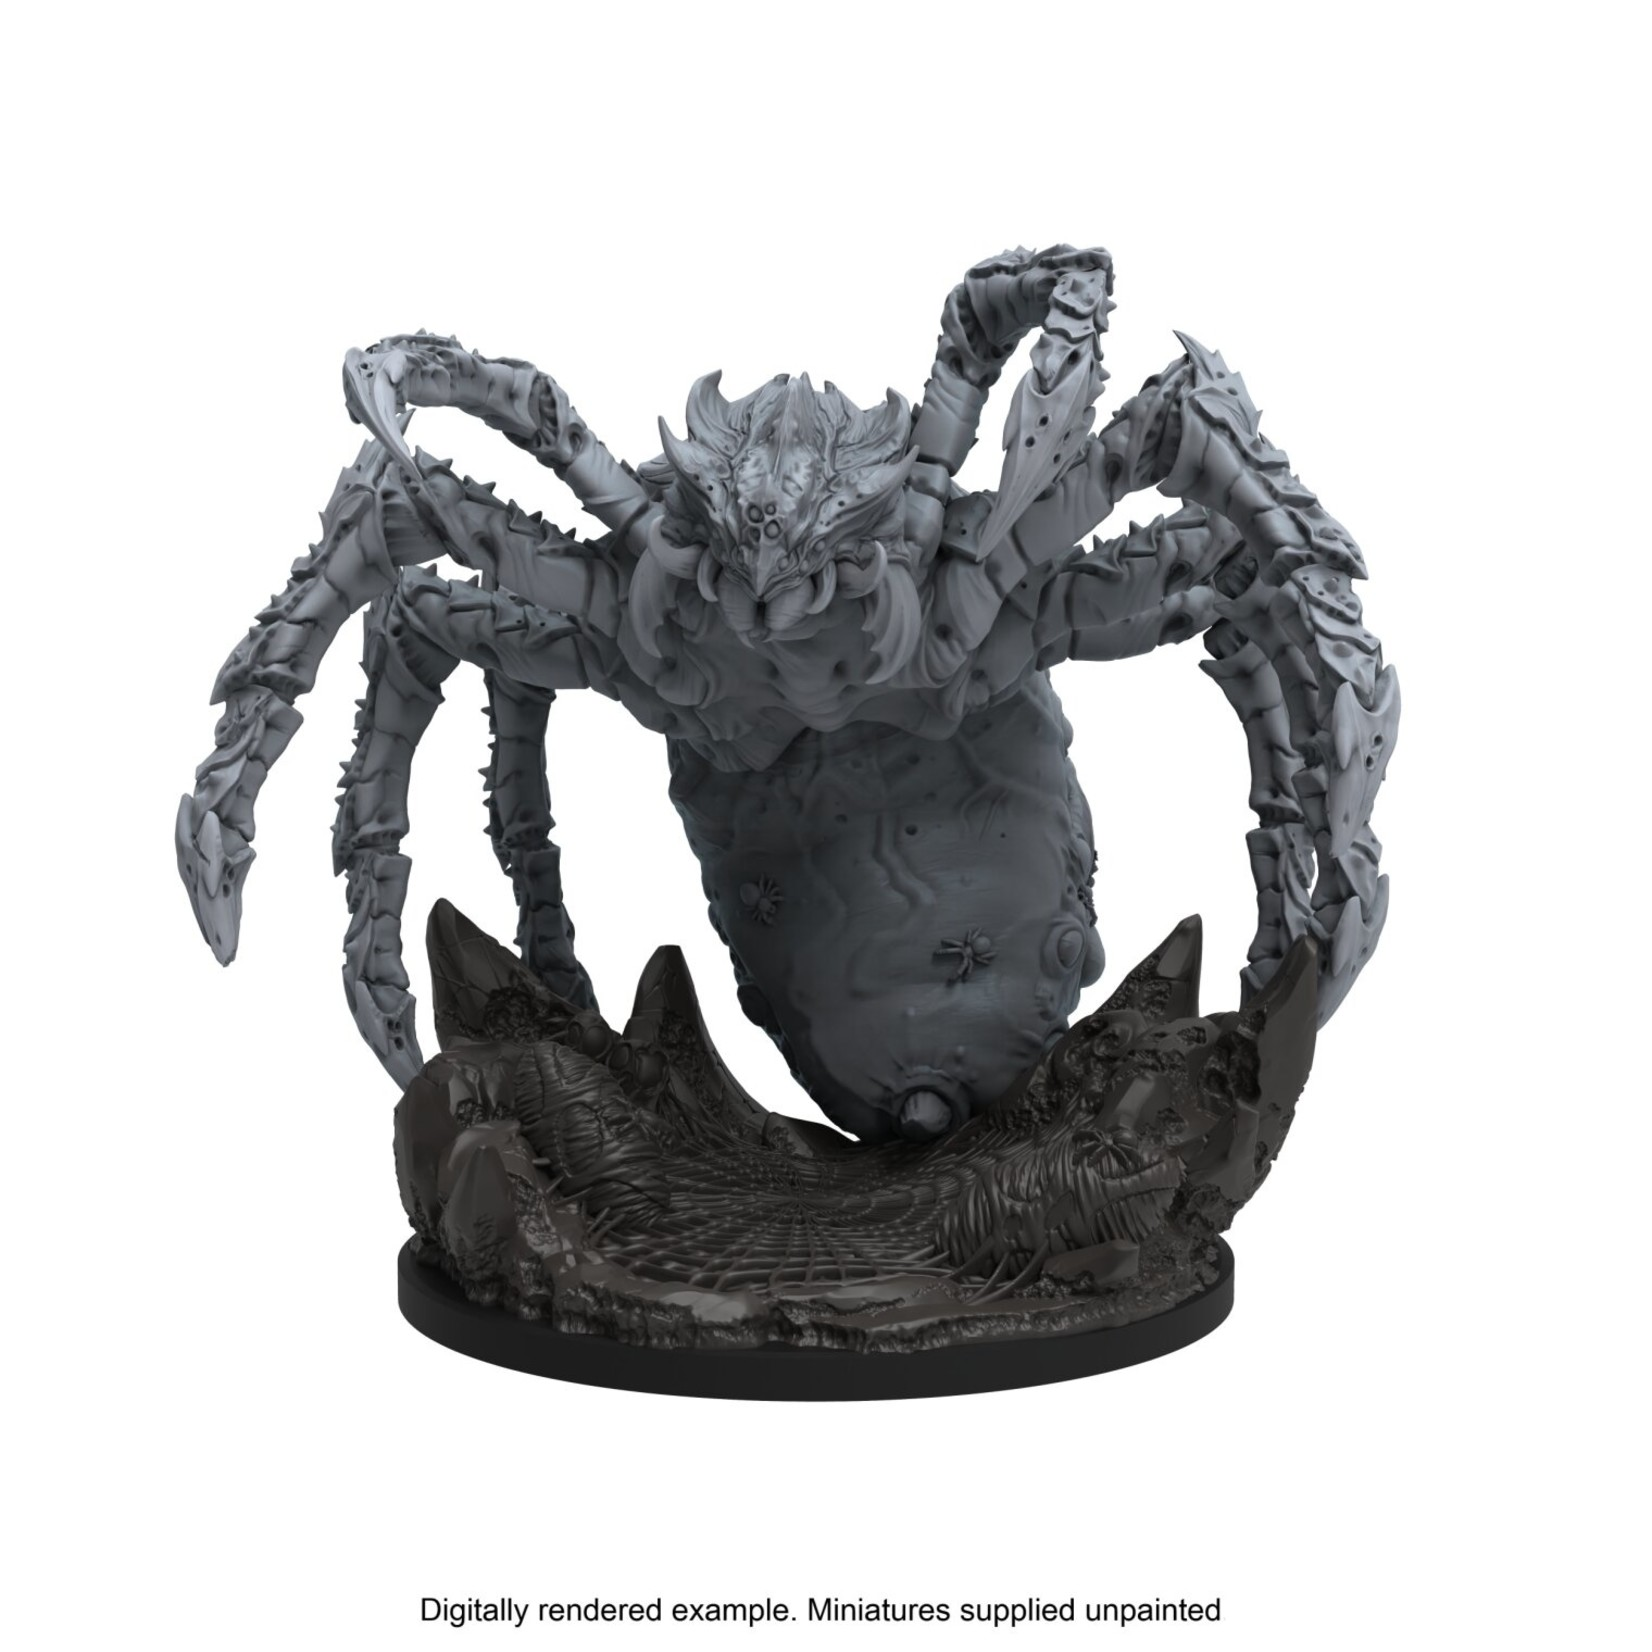 Steamforged Epic Encounters: Web of the Spider Tyrant